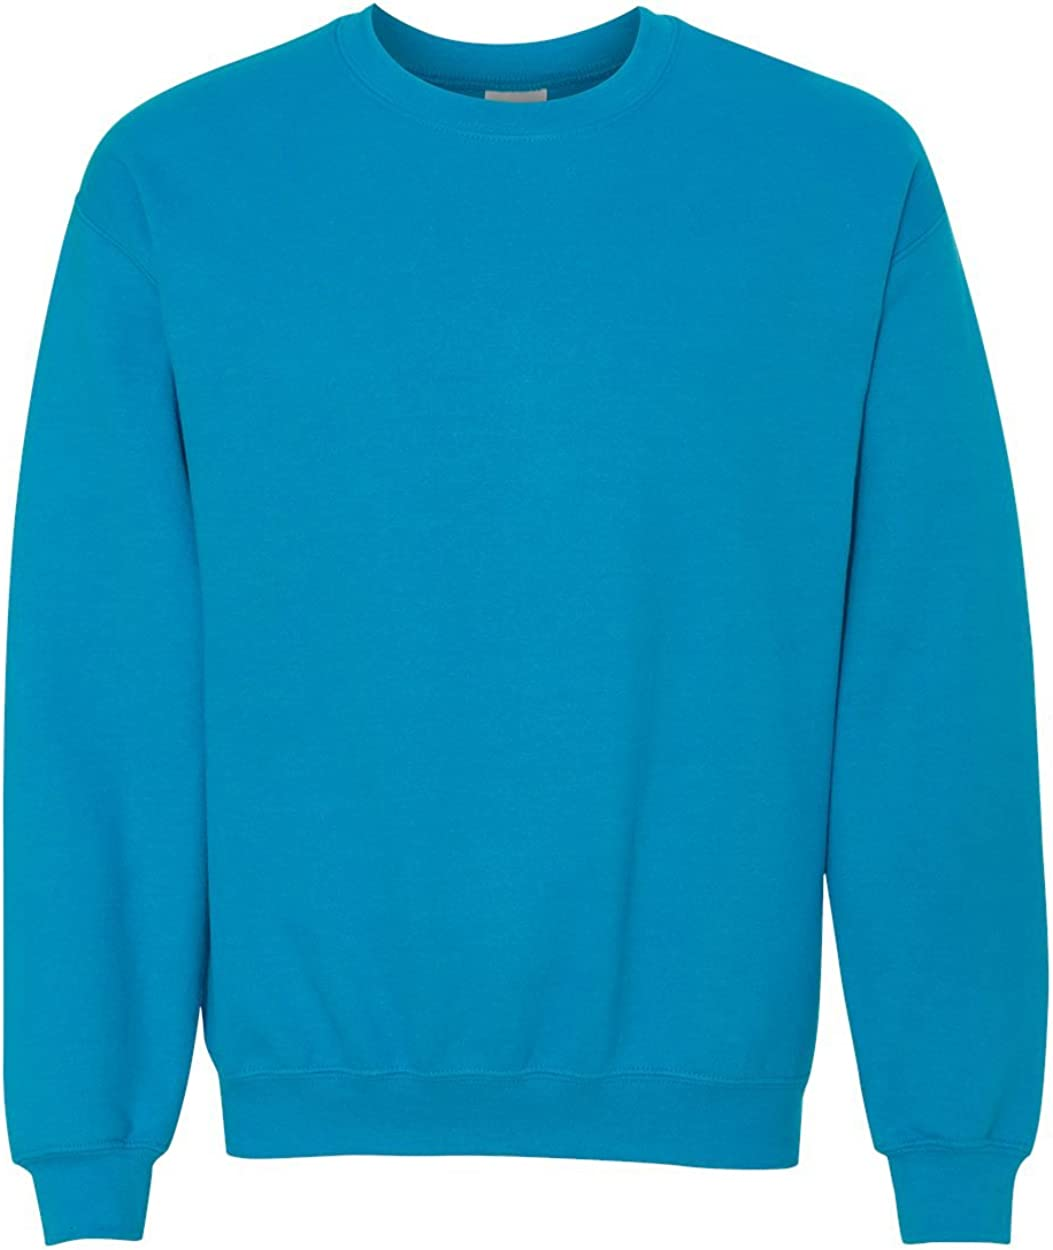 HeavyBlend/™ adult crew neck sweatshirt